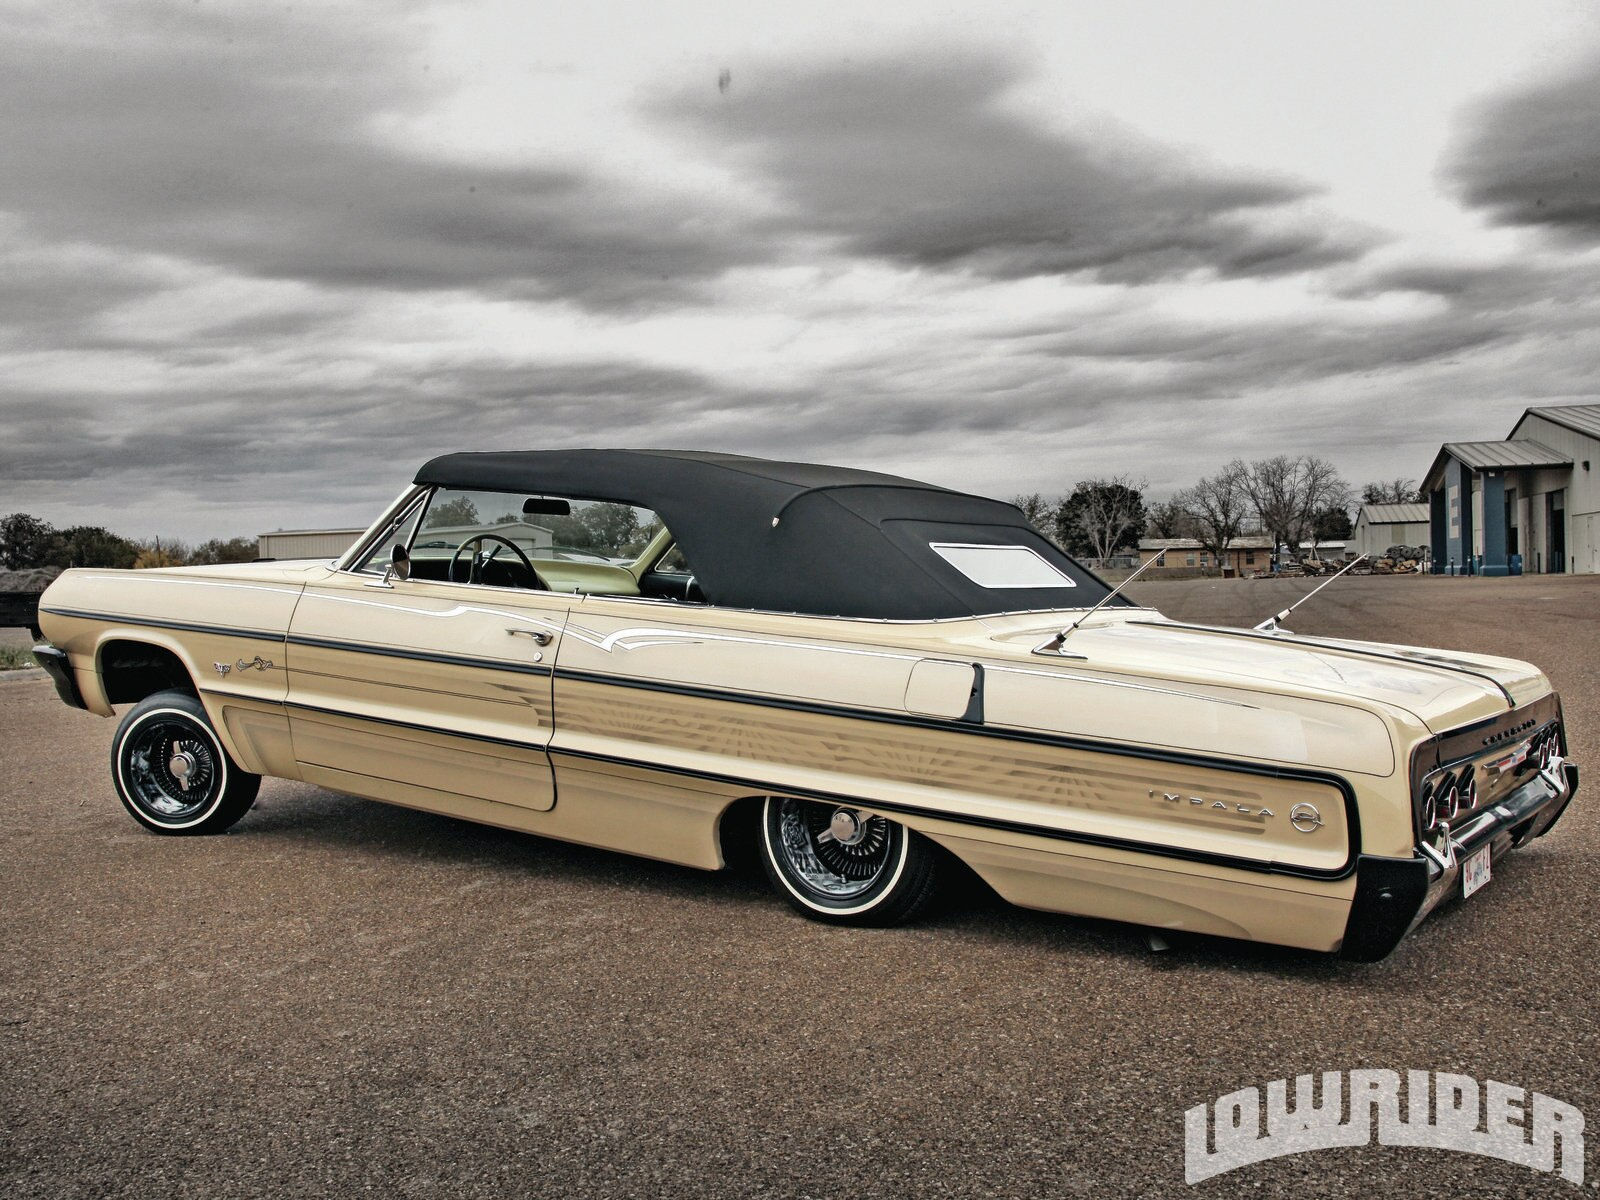 1305-1964-chevrolet-impala-left-side-view2